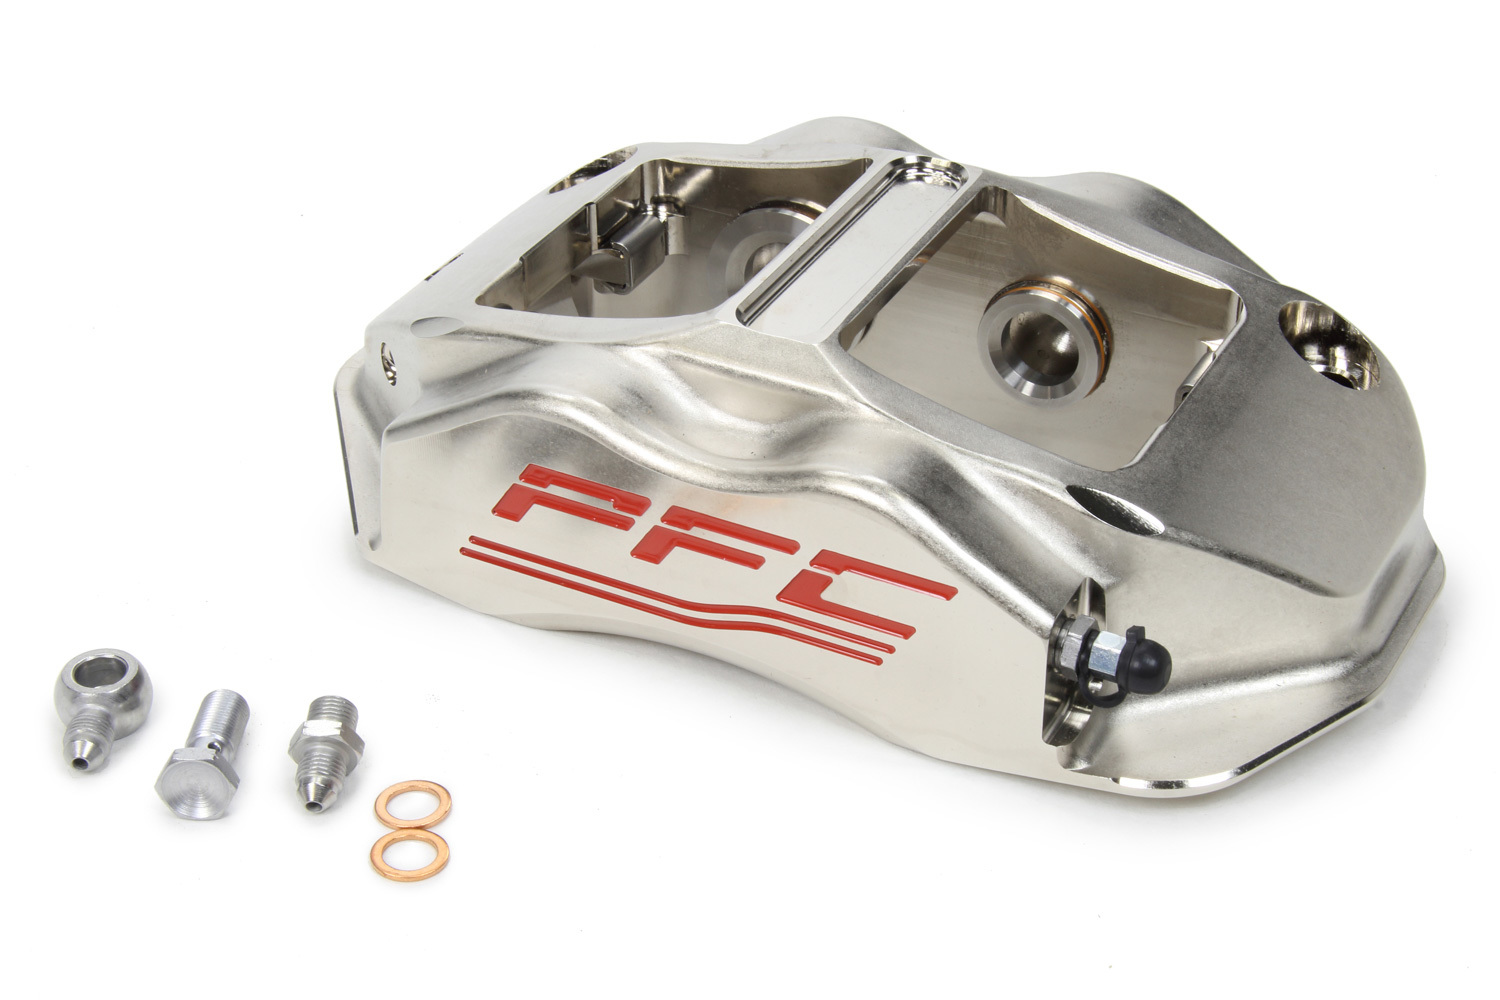 Performance Friction 94-323-410-440-01 Brake Caliper, ZR94, Driver Side, Leading, 4 Piston, Aluminum, Clear Anodized, 12.716 in OD x 1.250 in Thick Rotor, 7.00 in Radial Mount, Each